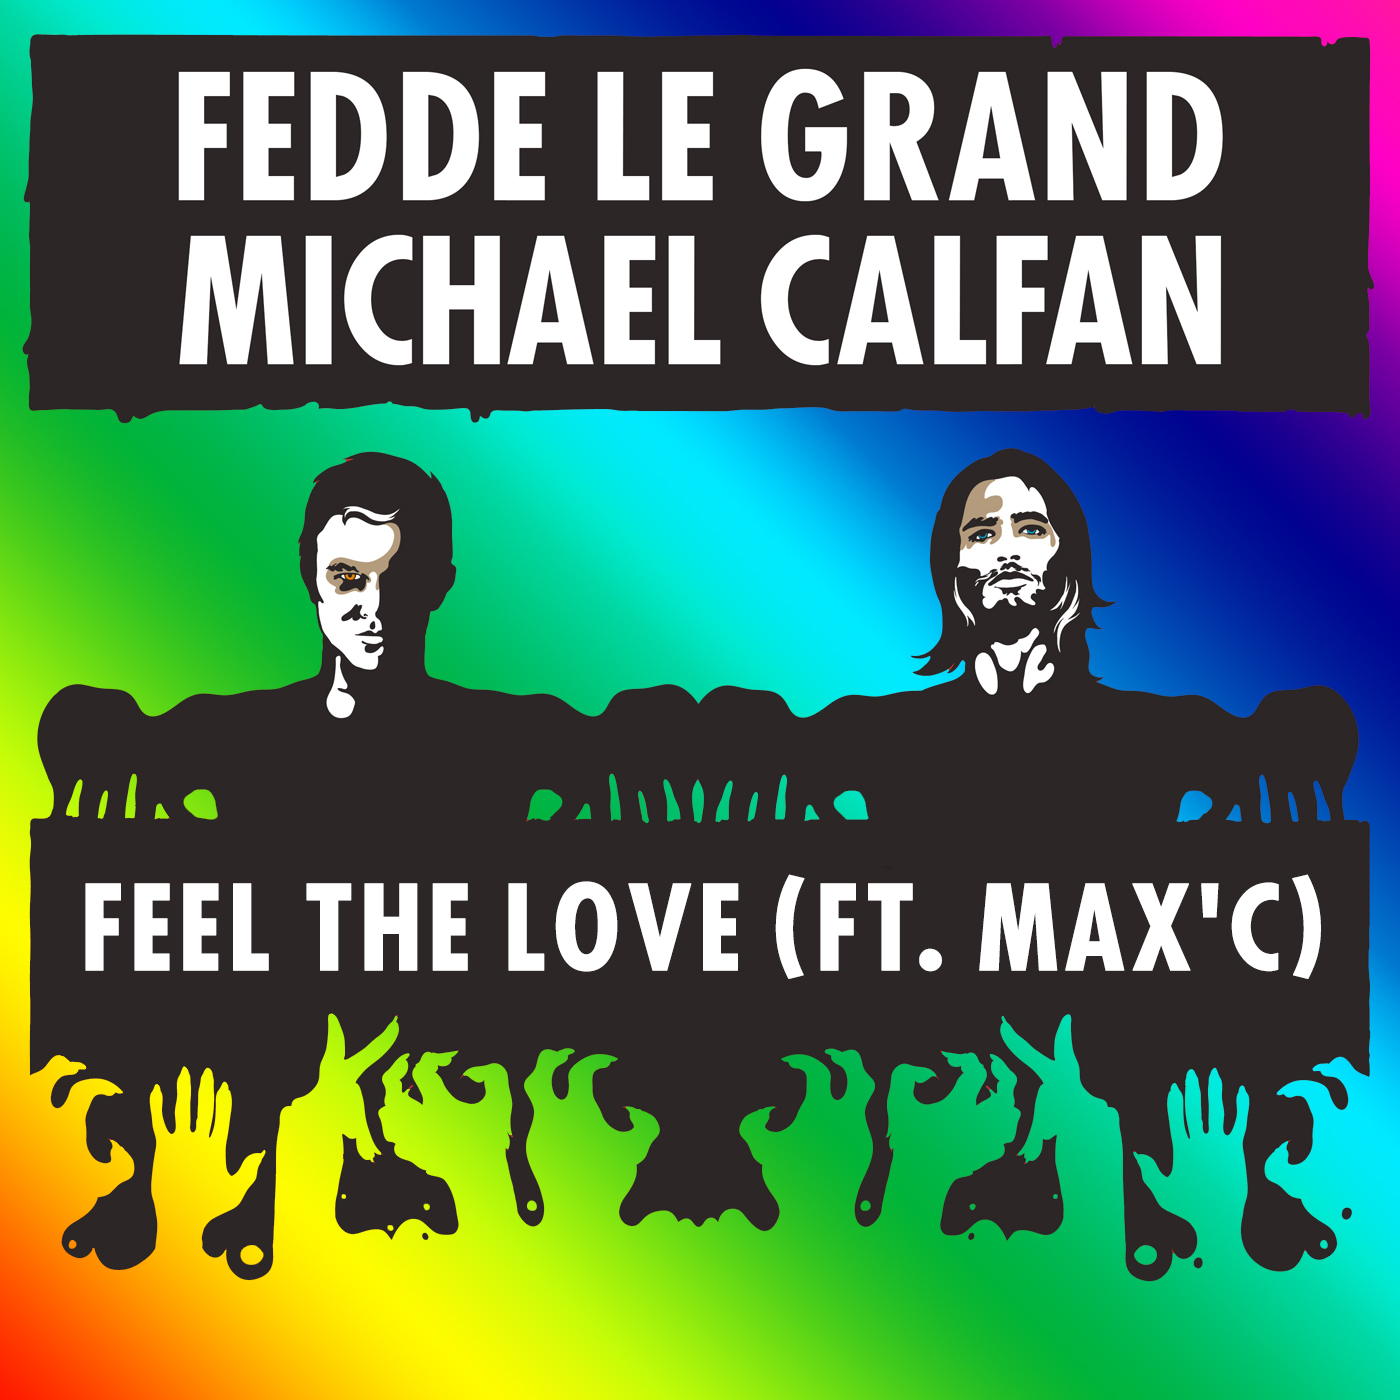 Fedde Le Grand & Michael Calfan Ft. Max'C - Feel The Love (FREE DOWNLOAD)